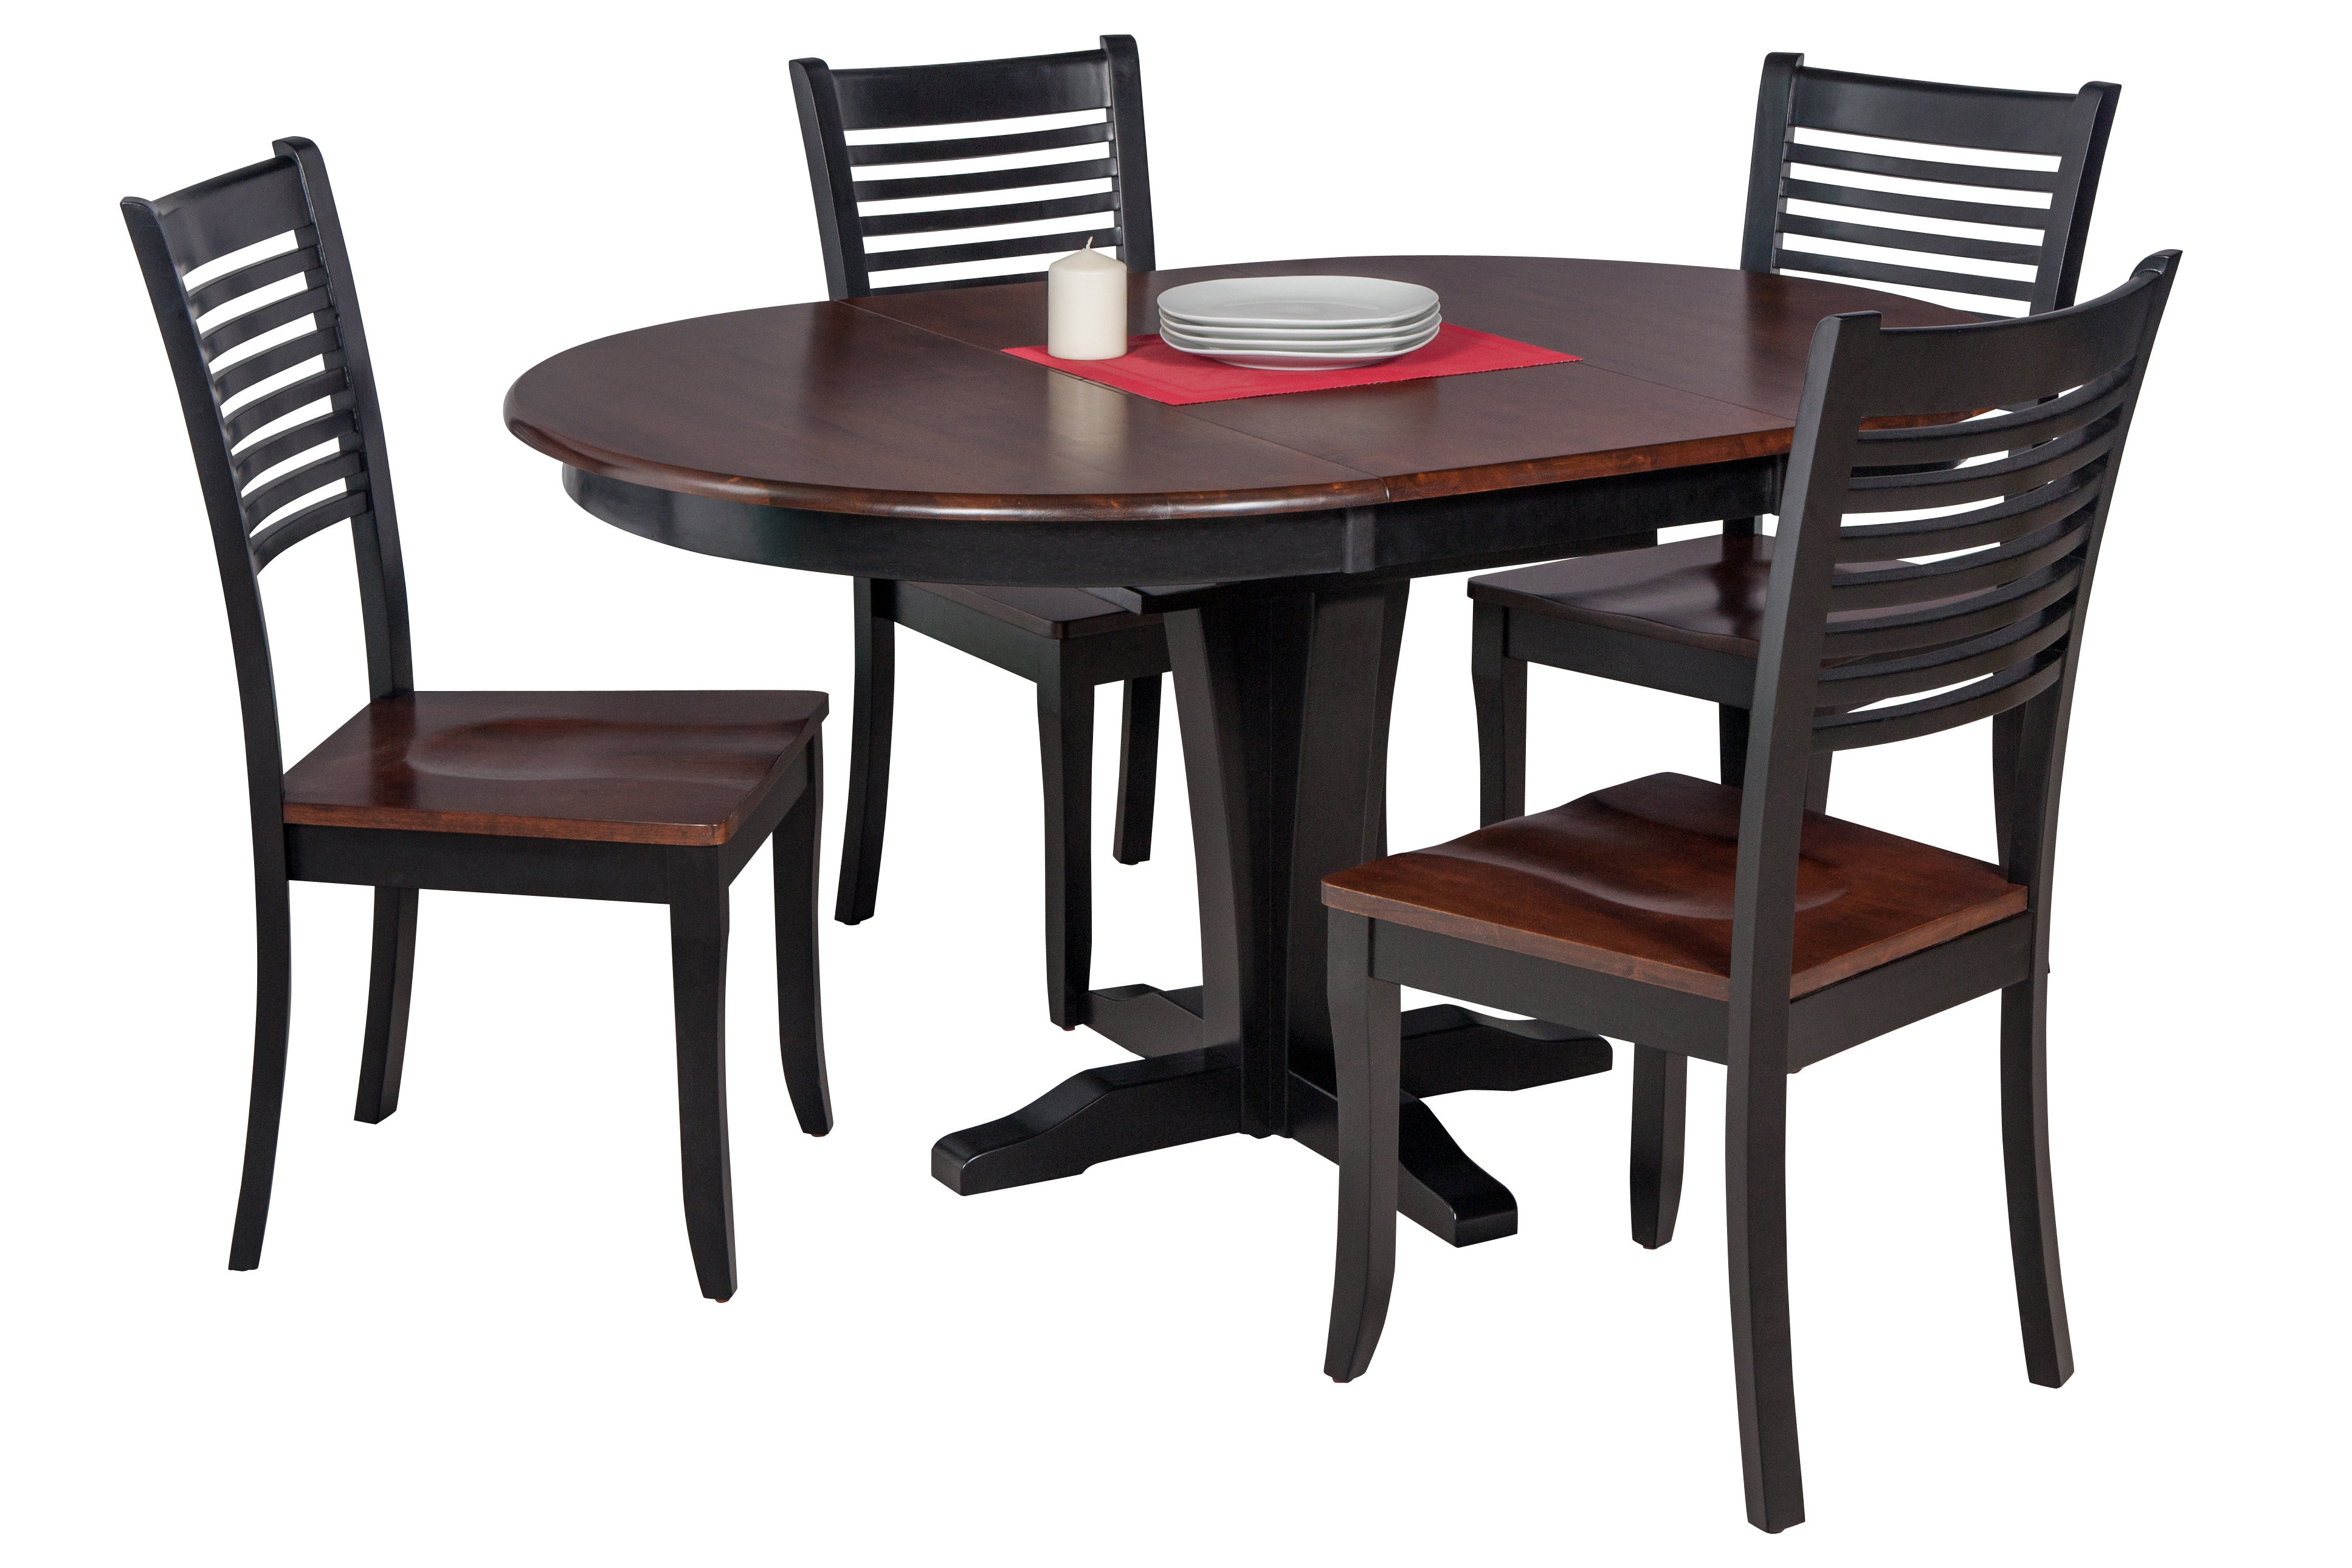 Darby Home Co Maryrose 5 Piece Solid Wood Dining Set (#1 of 20)